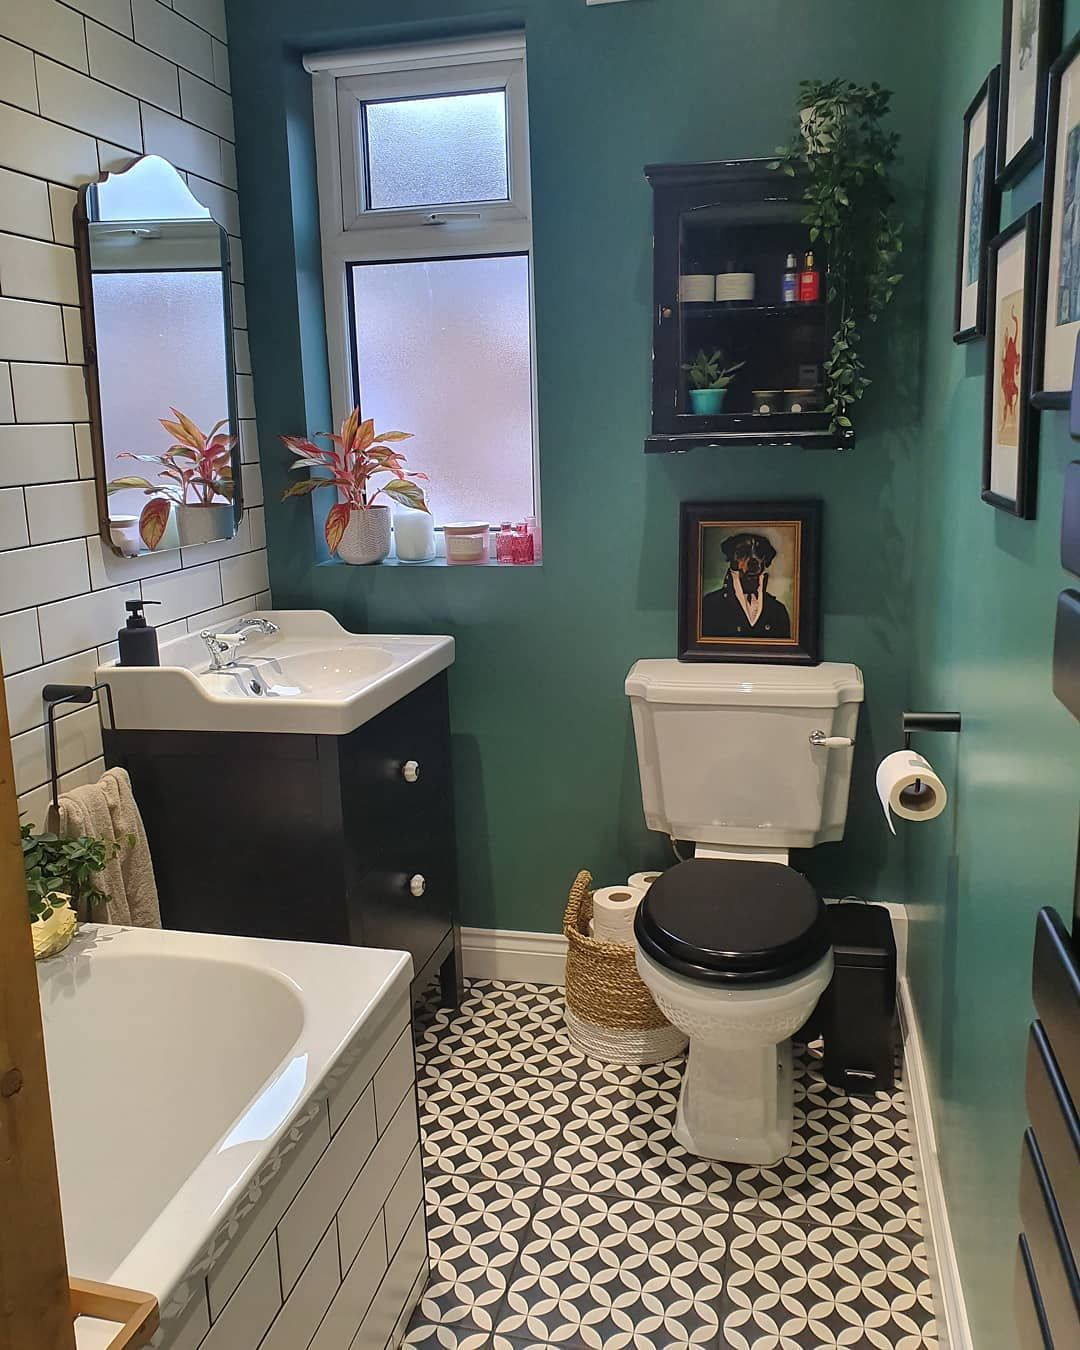 B E T H On Instagram Myhousethismonth Scrubs Up Well We Had To Live With A Baby Blue Bathroom For Over 2 Years With Blue Bathroom Breeze Blocks Bathroom